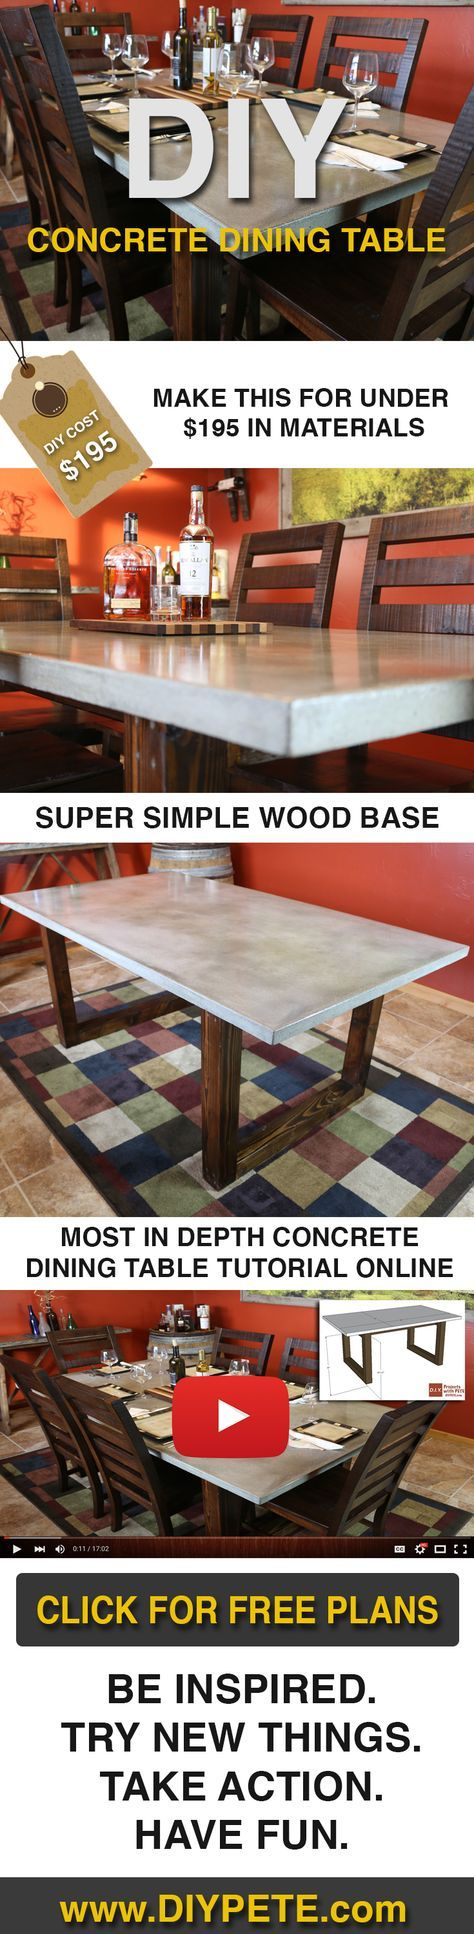 Diy Concrete Dining Table Concrete Dining Table Concrete Diy Diy Hardwood Floors